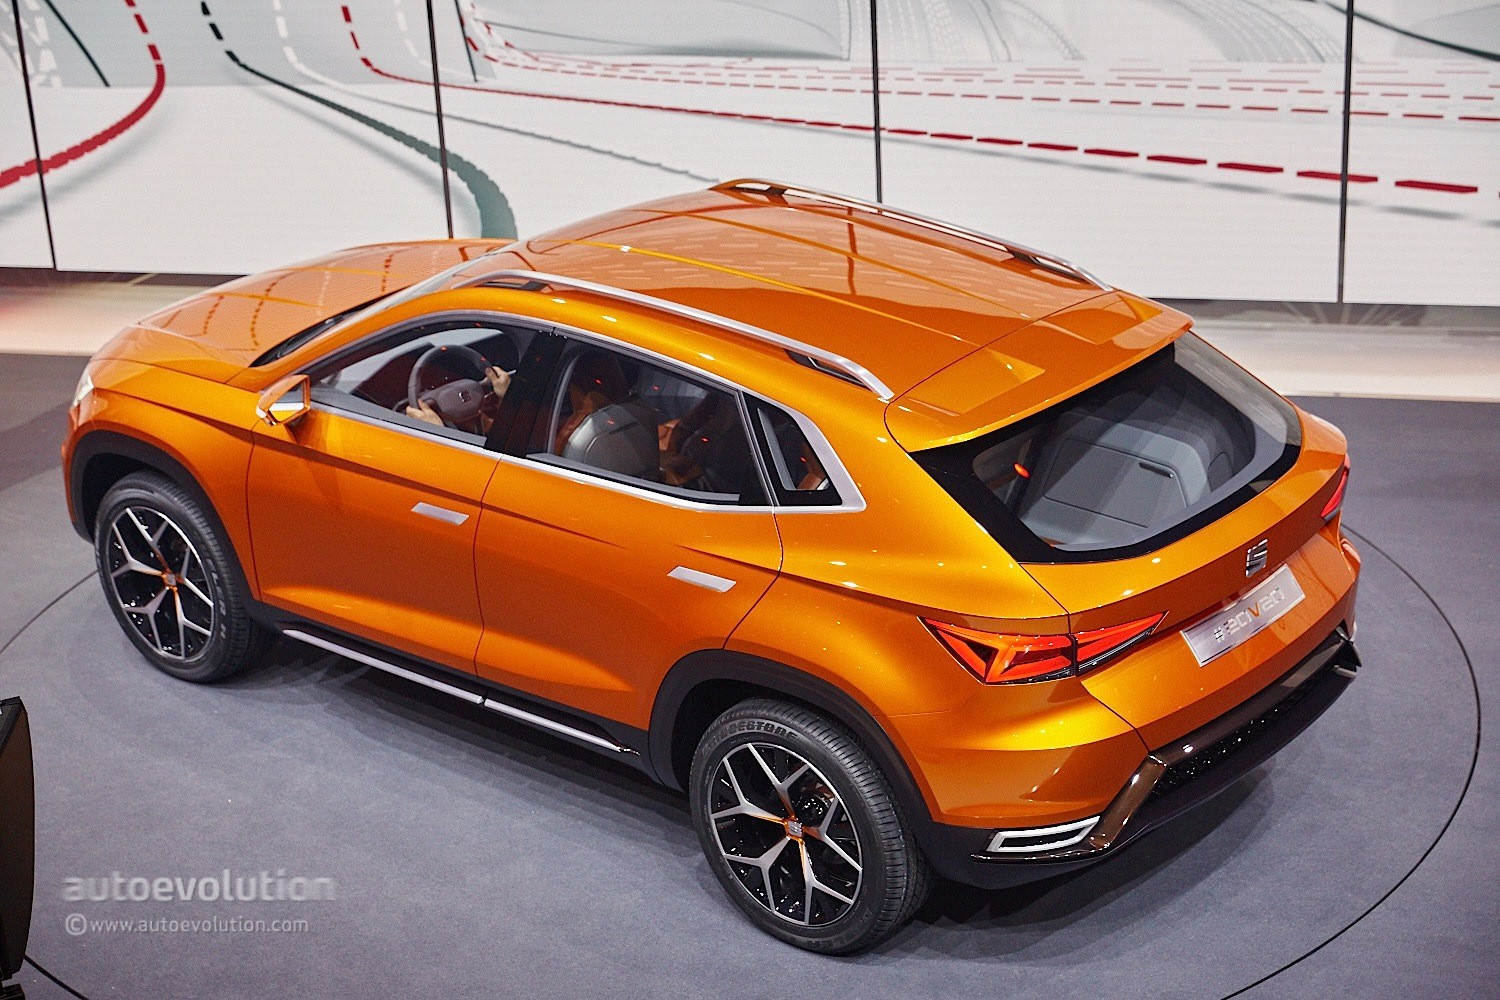 seat-prostyle-suv-will-be-the-first-of-4-new-models-coming-until-2017_15